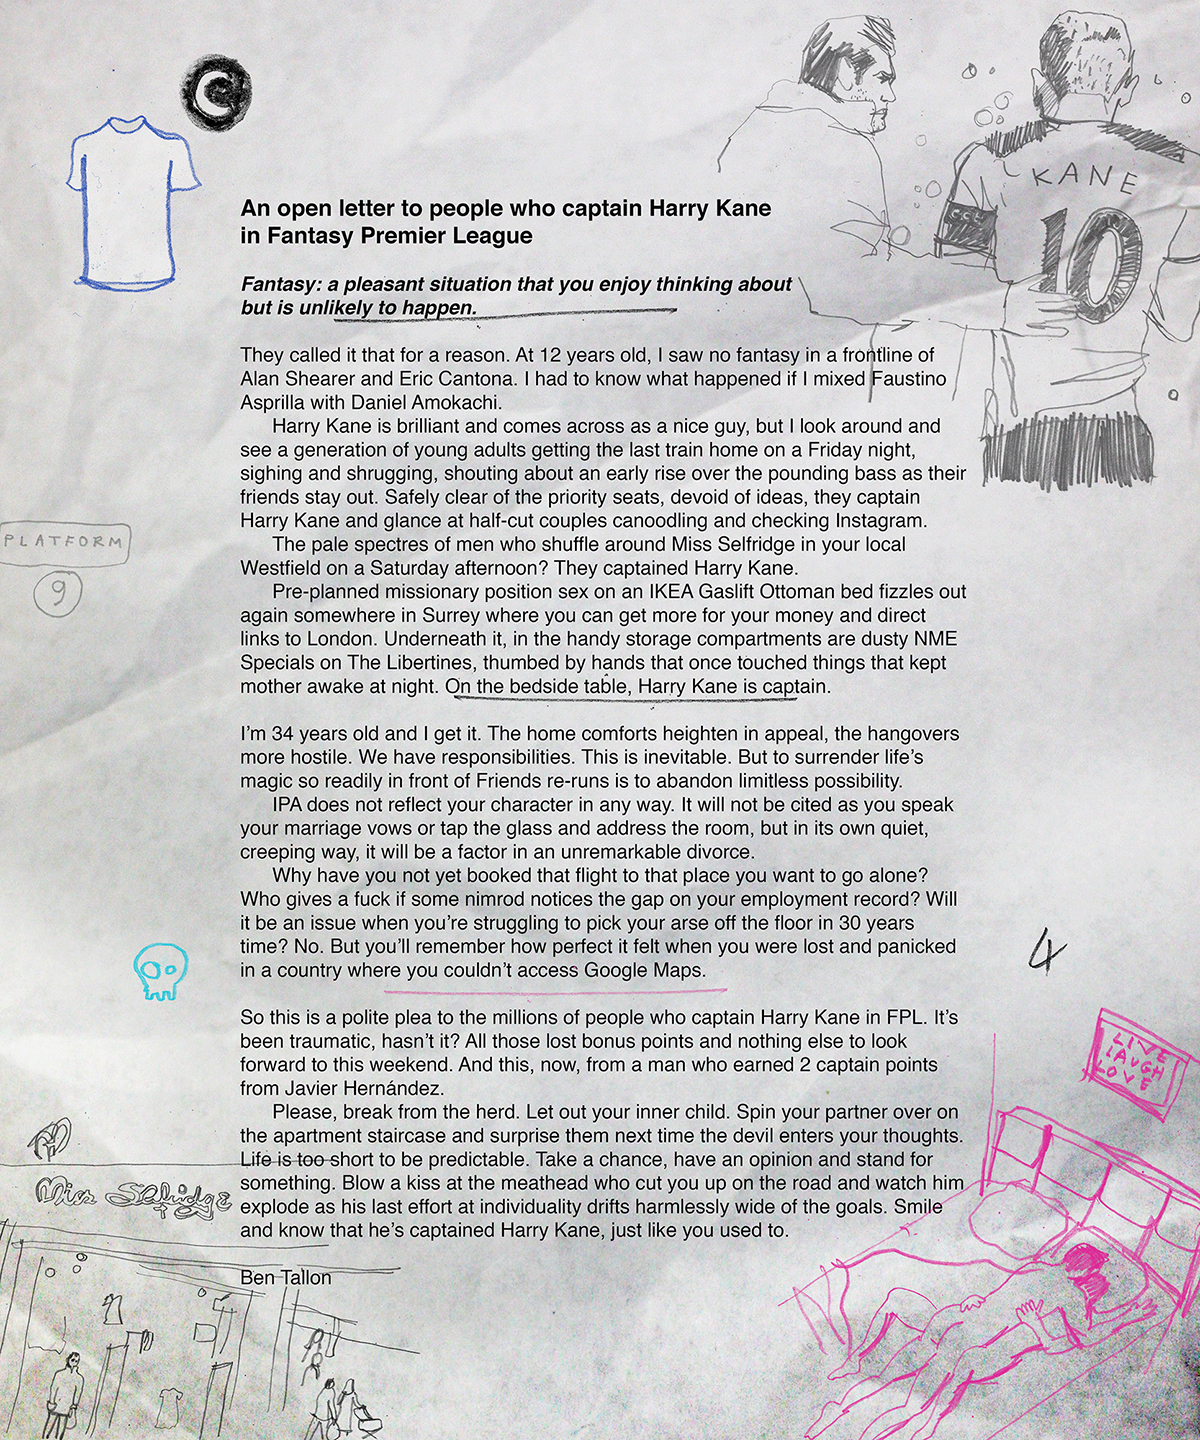 Open letter to Harry Kane captain bores in fantasy premier league by Ben Tallon, illustrator, writer and art director.